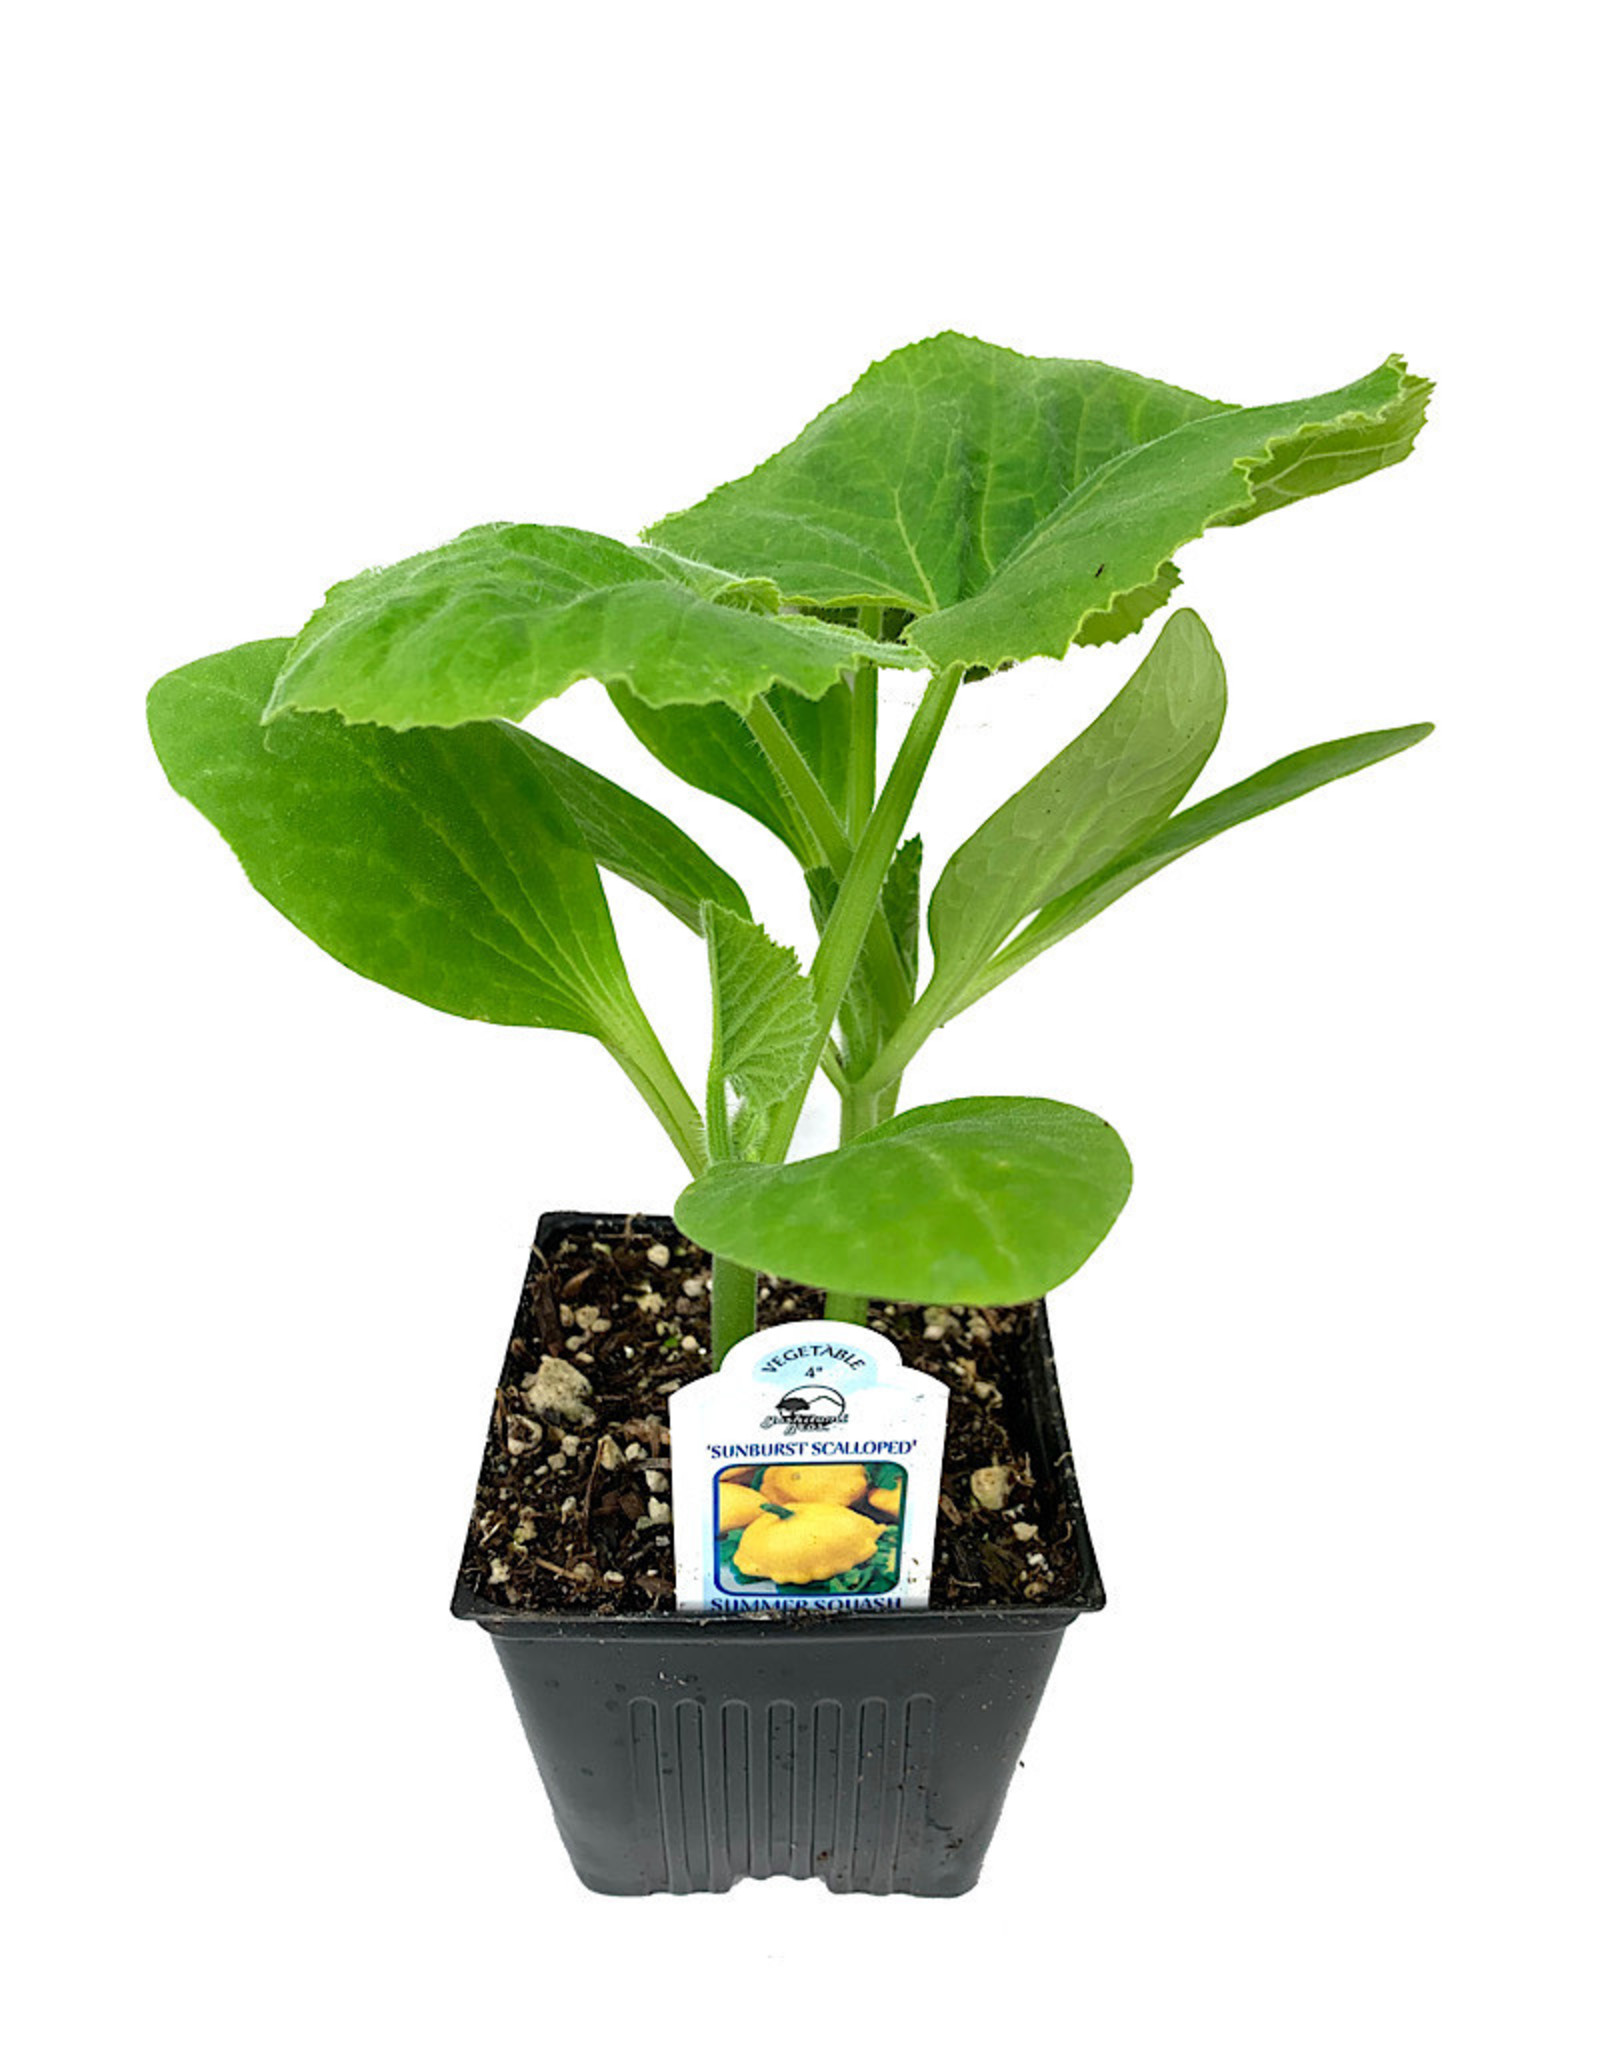 Squash 'Sunburst Patty Pan' - 4 inch